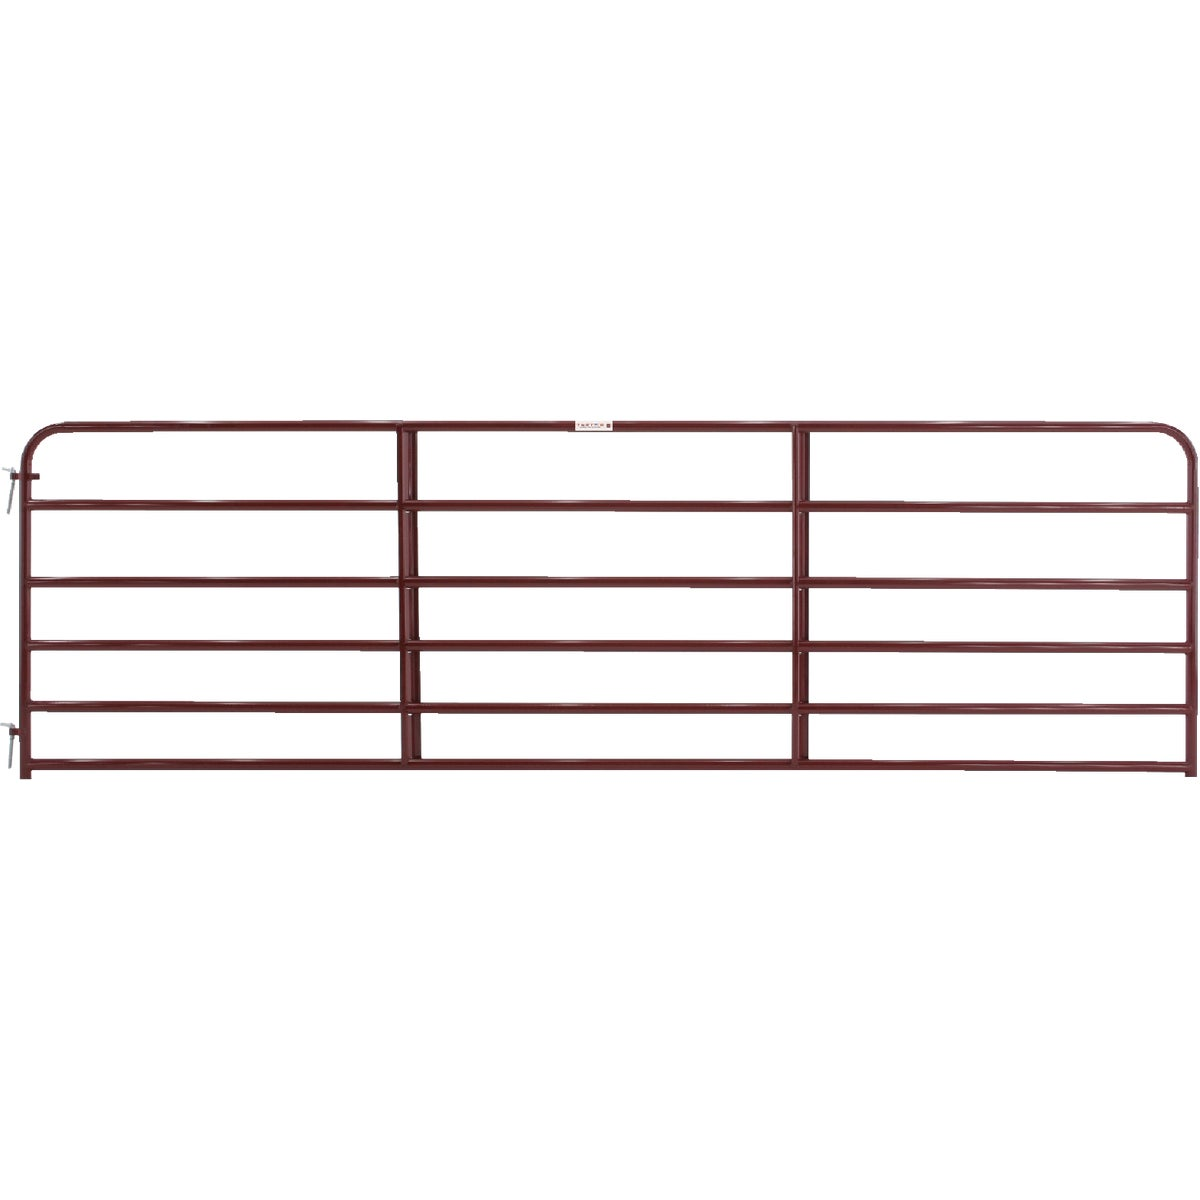 14' 6BAR RED ECONO GATE